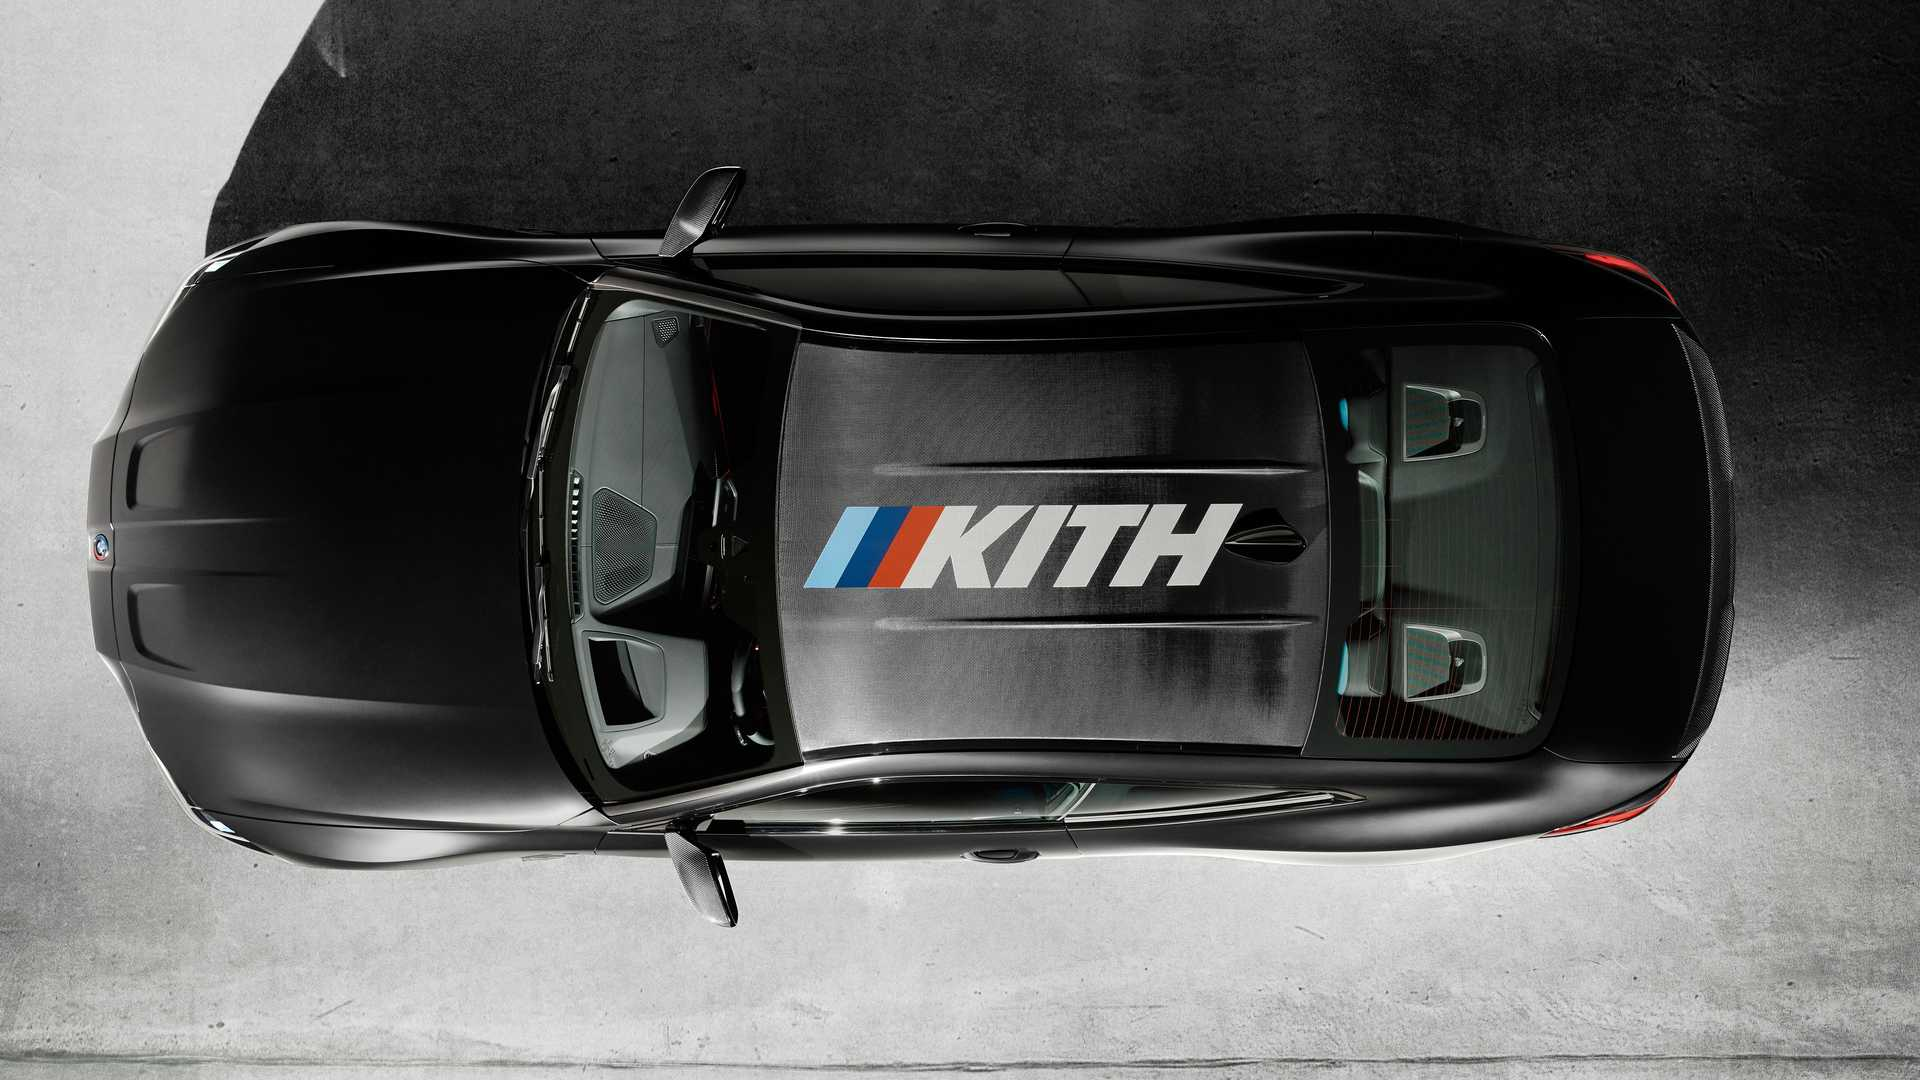 BMW has collaborated with the New York fashion brand Kith to produce a limited series of the M4 Competition Coupe.